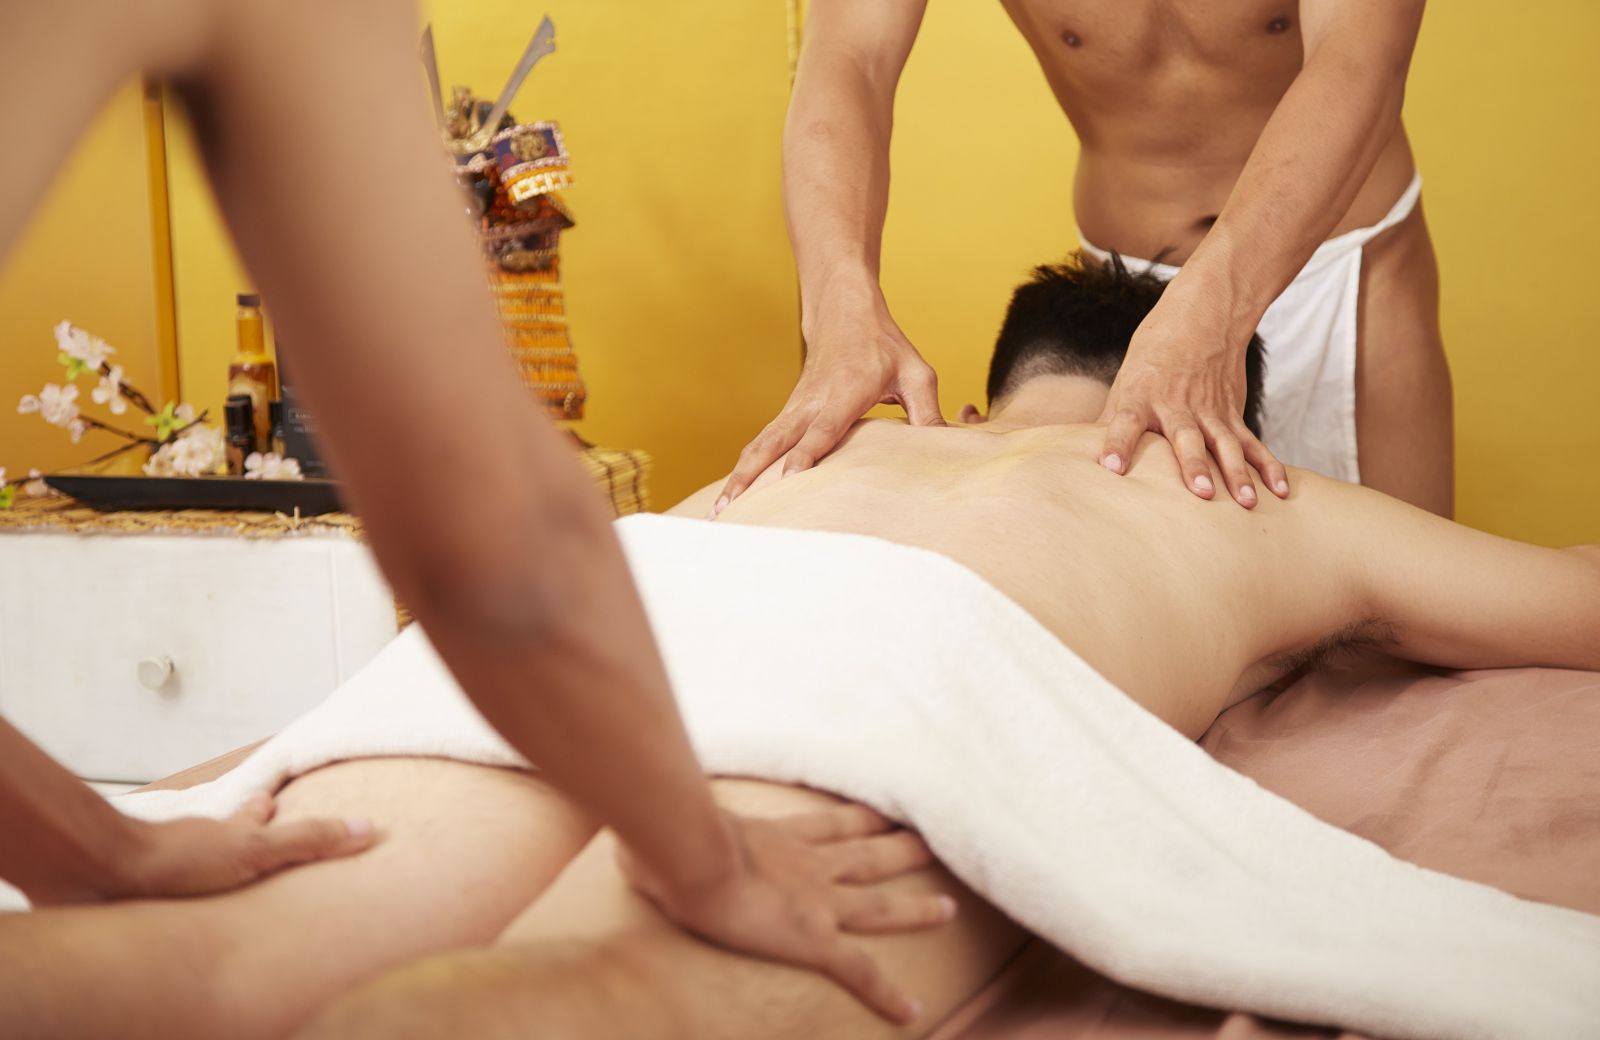 store hængepatter gay escort massage